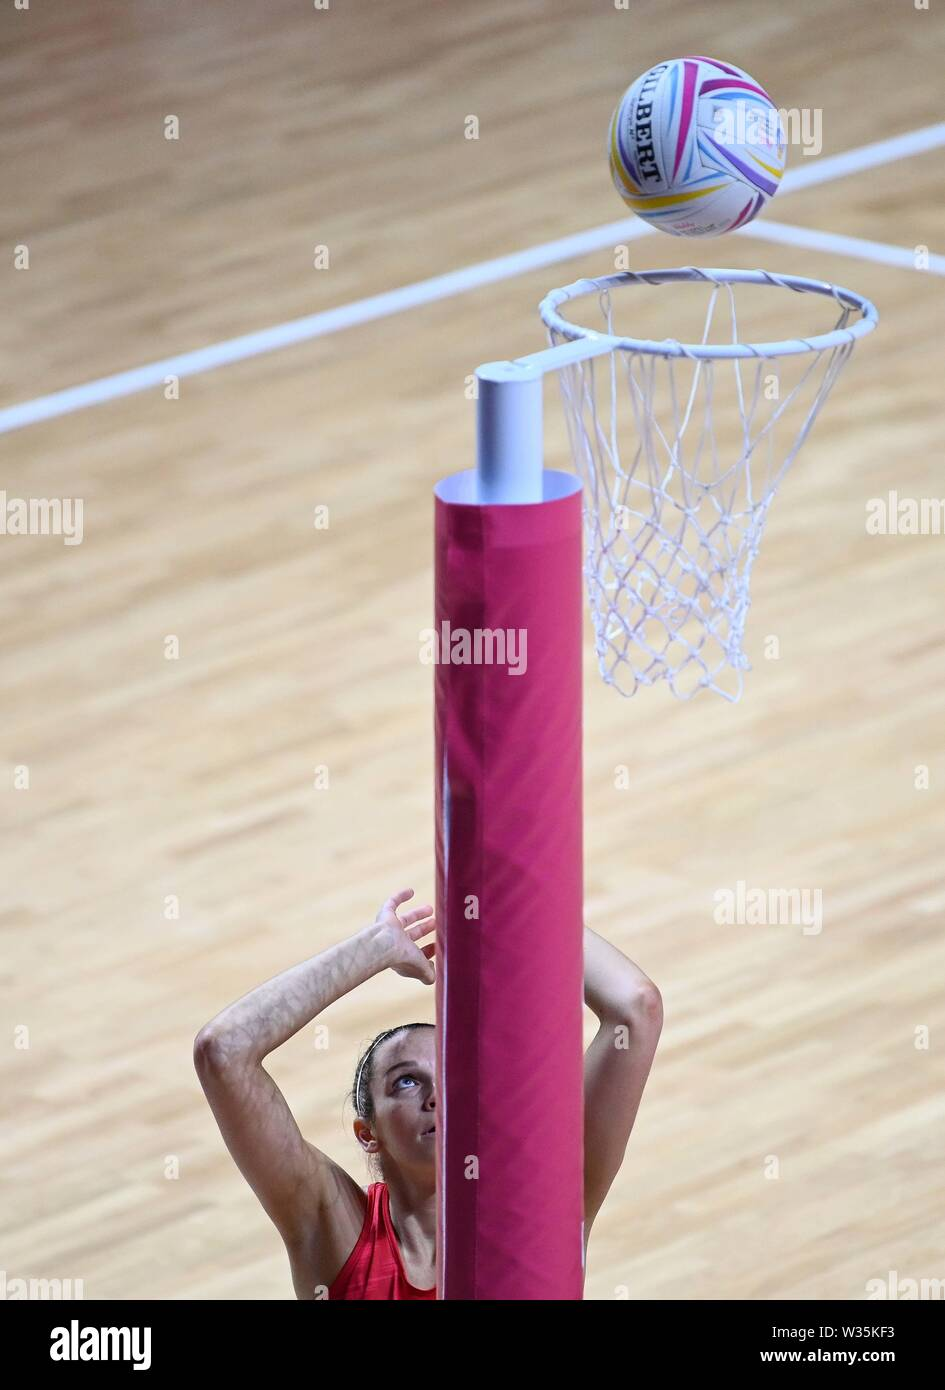 Liverpool. United Kingdom. 12 July 2019. Joanne Harten (England) scores during the Preliminary game between England and Uganda at the Netball World Cup. M and S arena, Liverpool. Merseyside. UK. Credit Garry Bowdenh/SIP photo agency/Alamy live news. - Stock Image